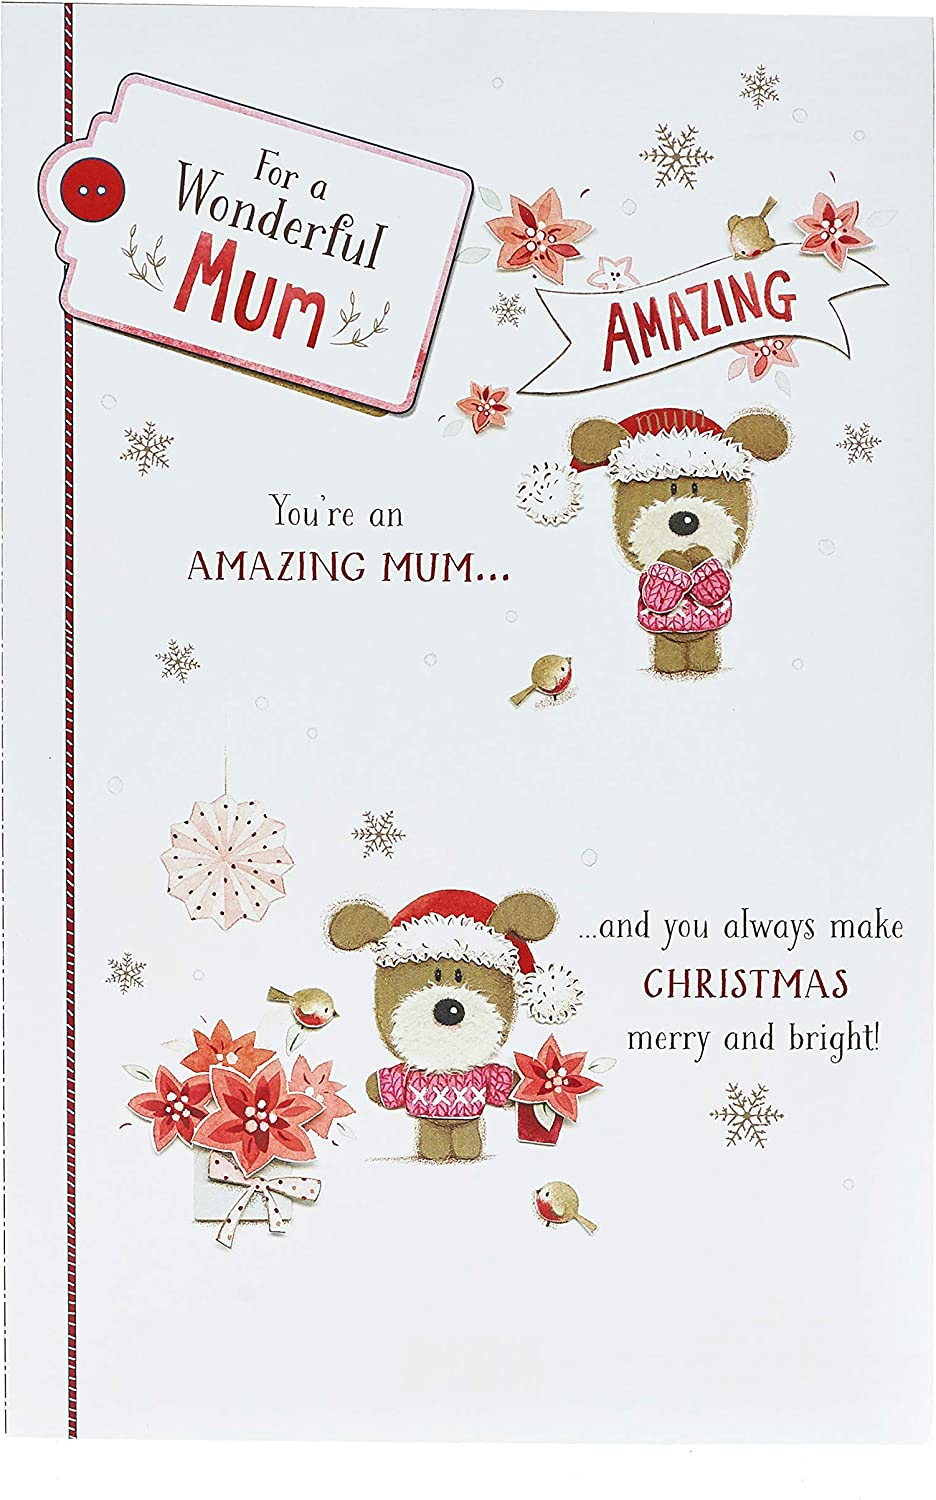 Amazon Com Mum Christmas Card Cute Mum Christmas Card With Nice Words Cute Dog Christmas Card Gift Card For Mum Christmas Gifts Office Products